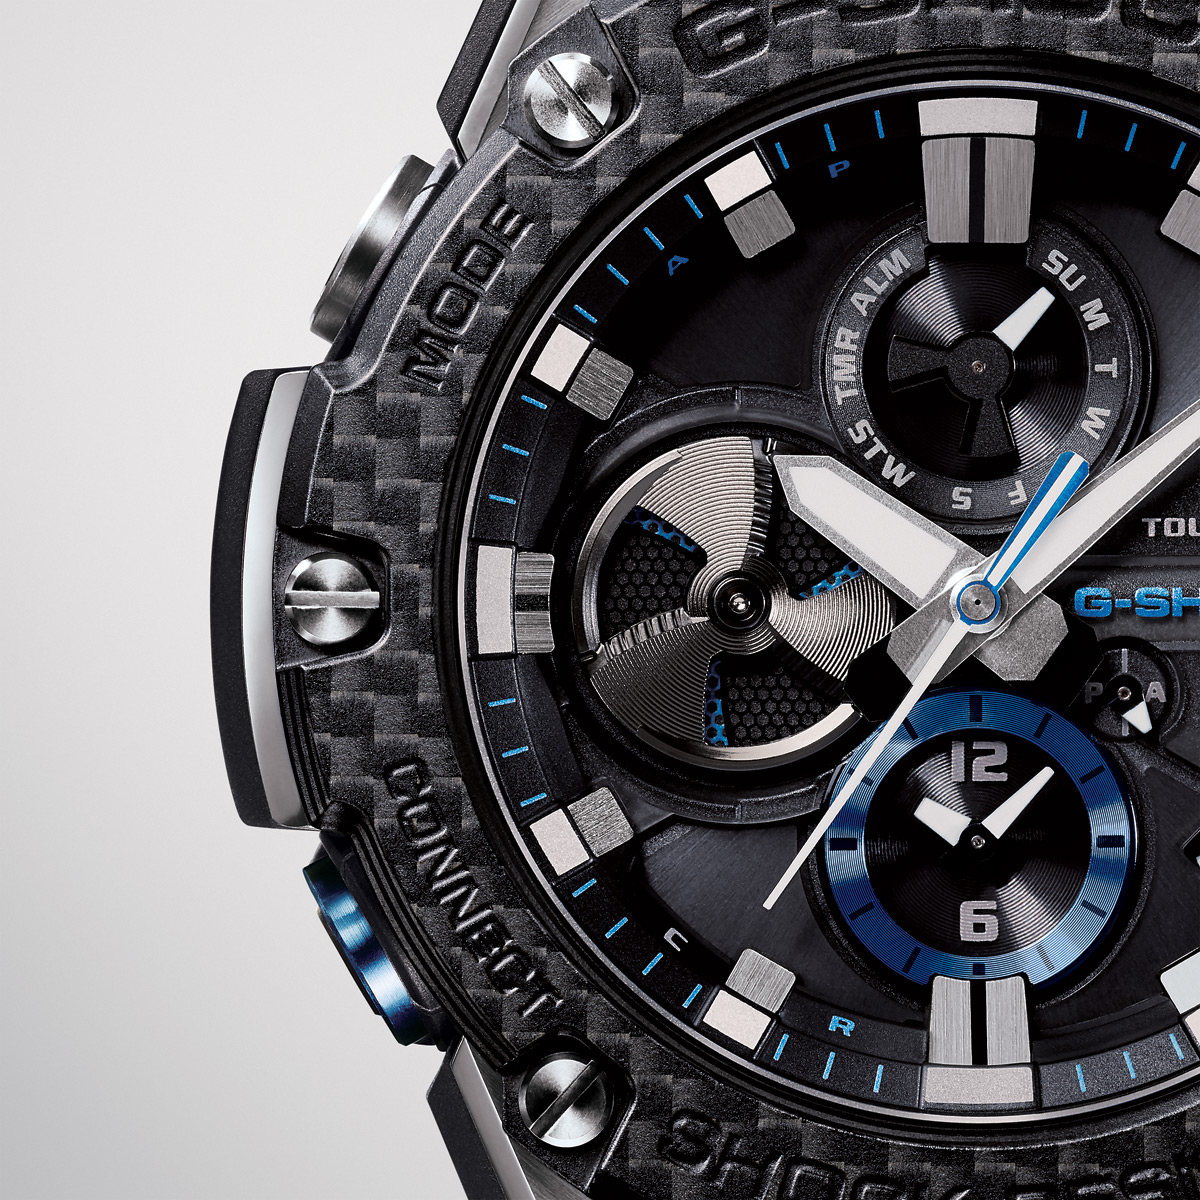 Casio G-SHOCK G-STEEL Connected Carbon GSTB100XA-1A